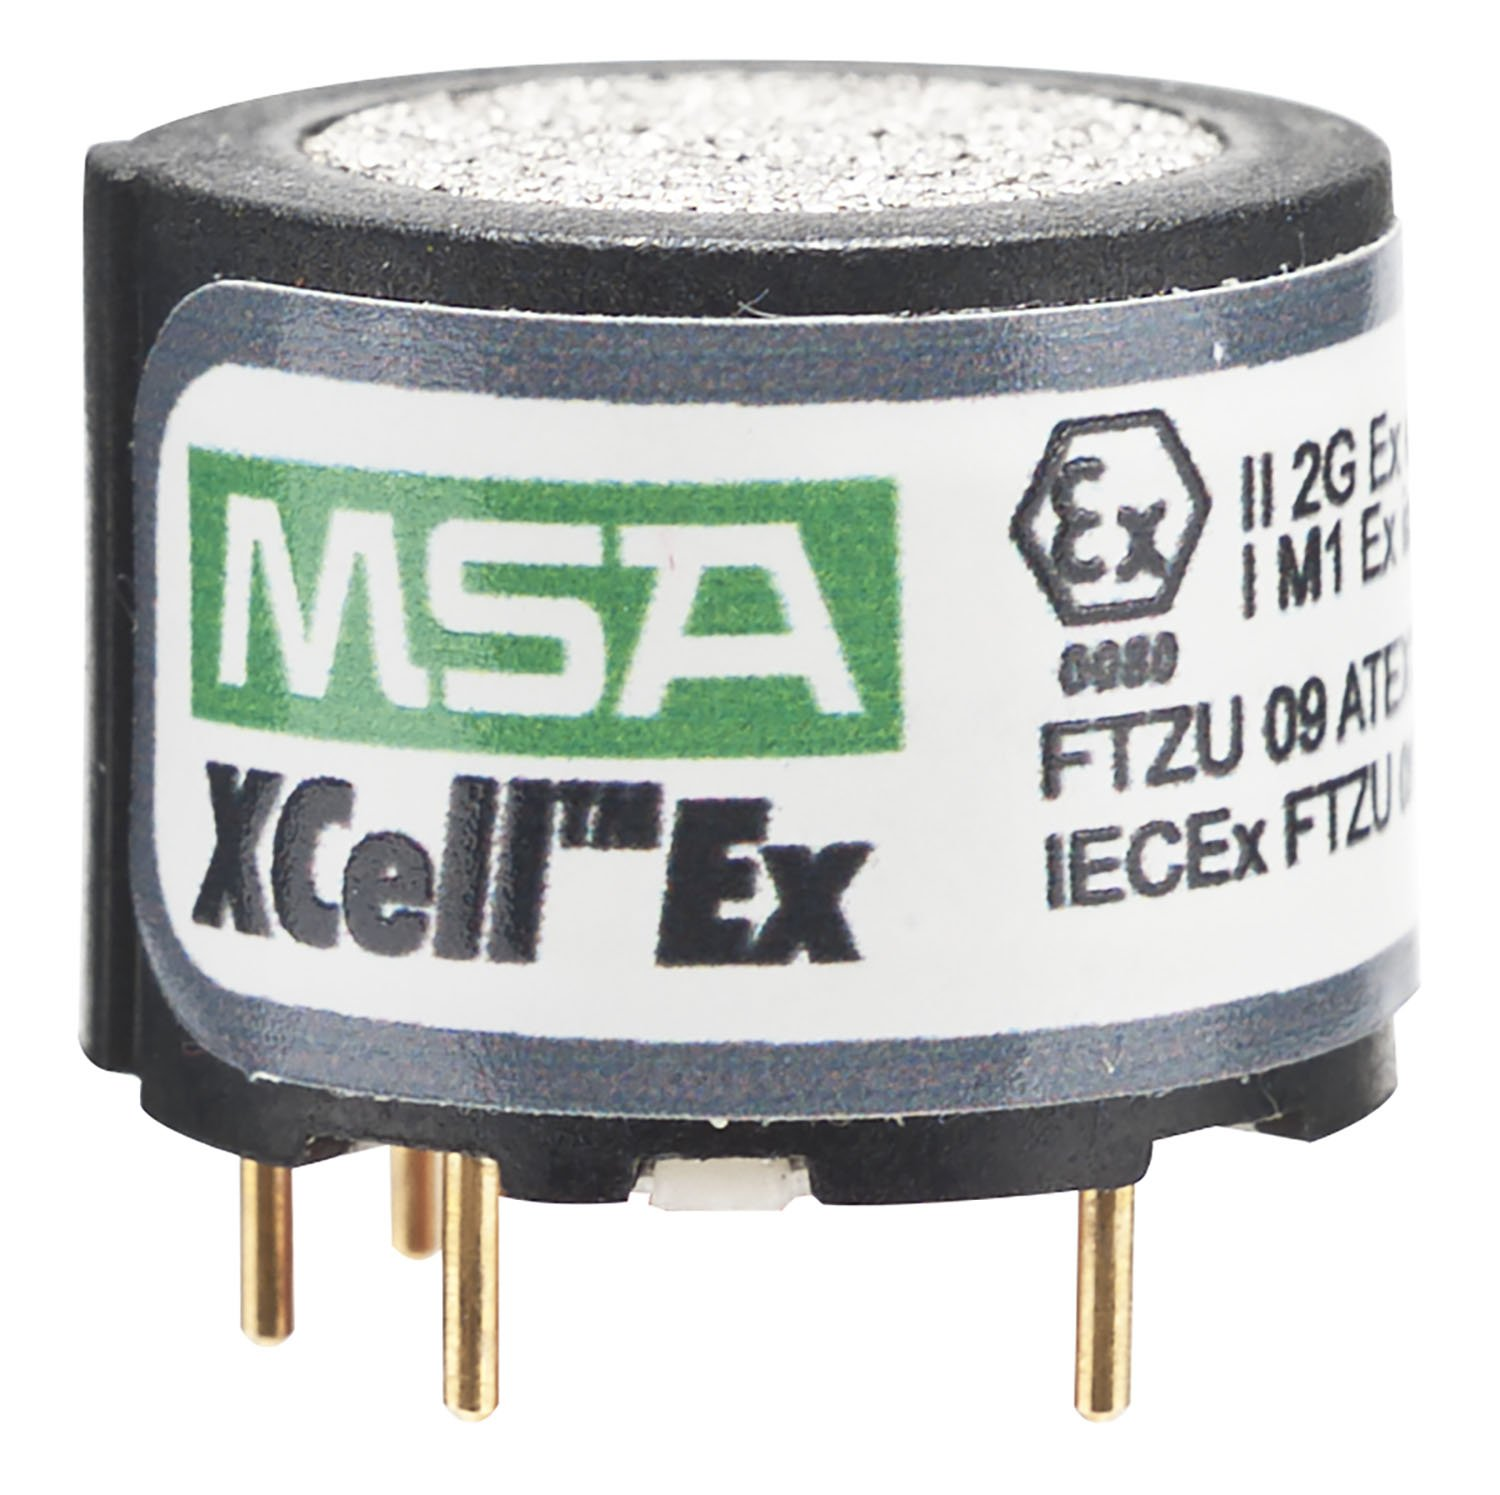 MSA 10106722 Combustible Gas and Methane Replacement Sensor with Alarms 5%/60% LEL for Use with ALTAIR 4X/5X Multi-Gas Detector by MSA